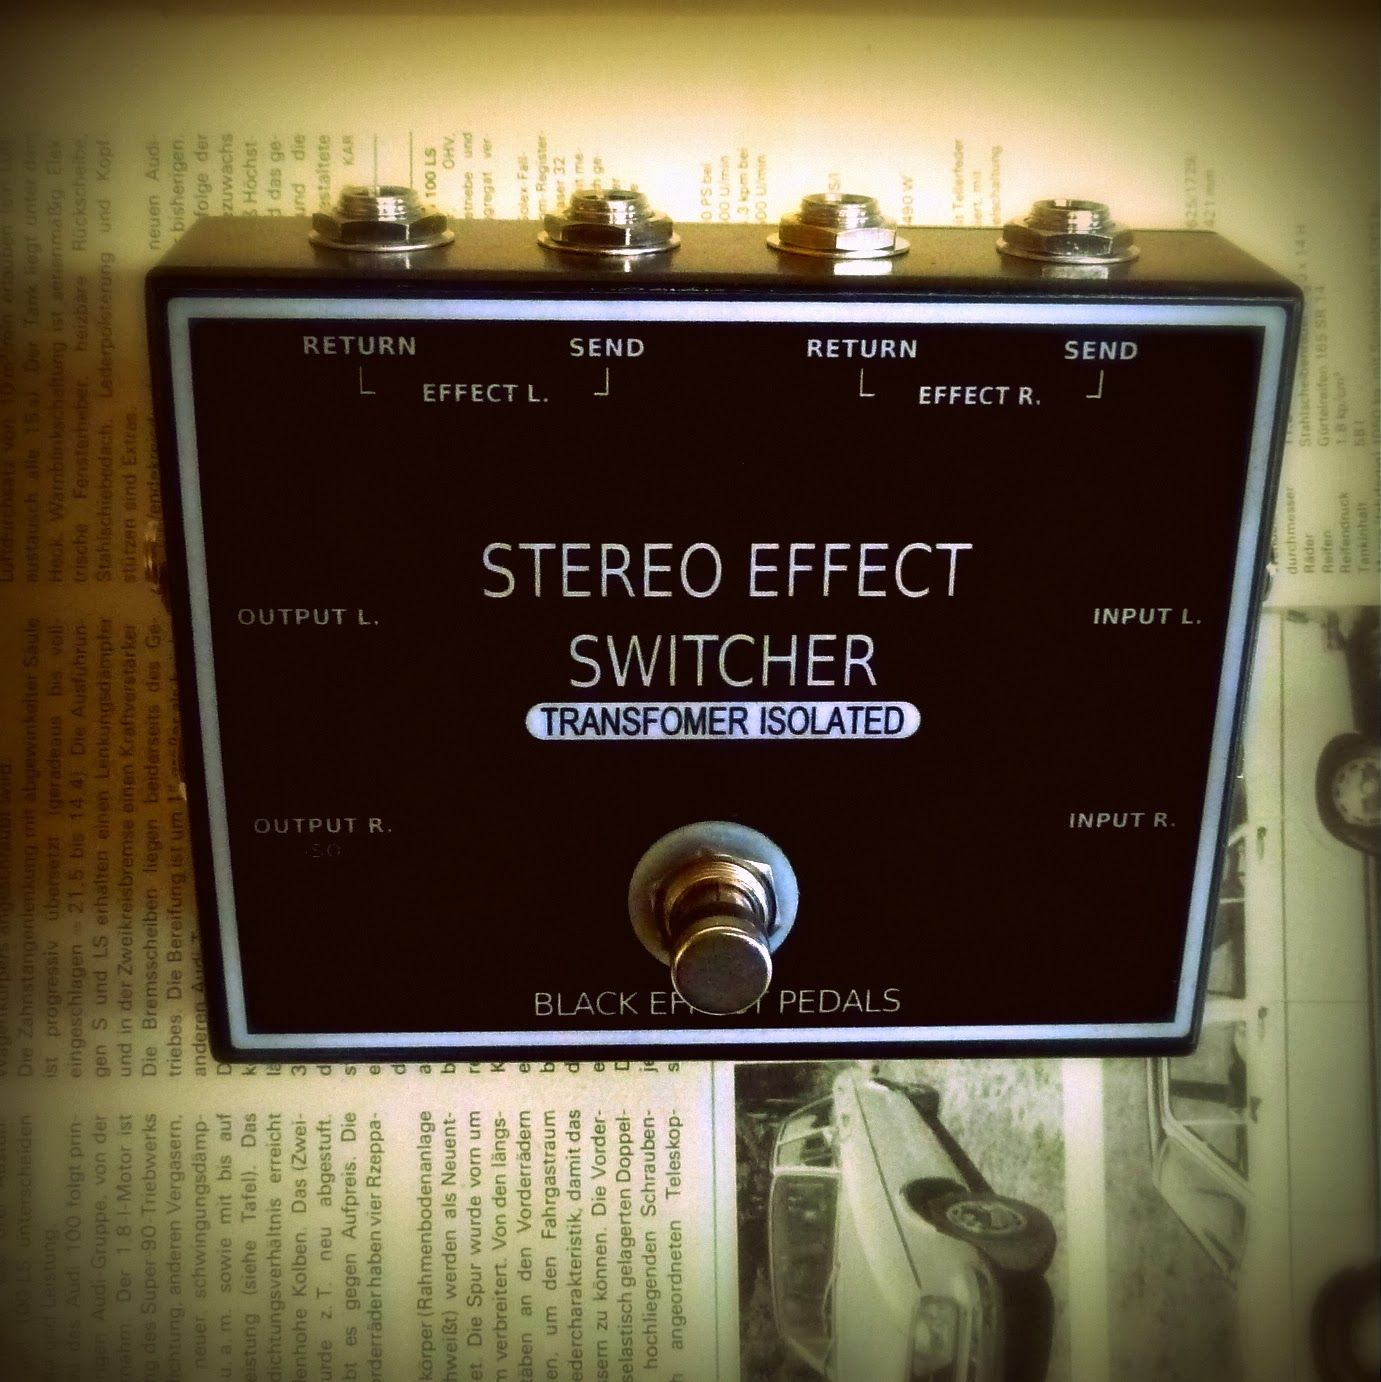 Black Effect Pedals Handmade Guitar Effects New Stereo Looper Pedal Wiring Diagram Loop Switcher With Optional Tra